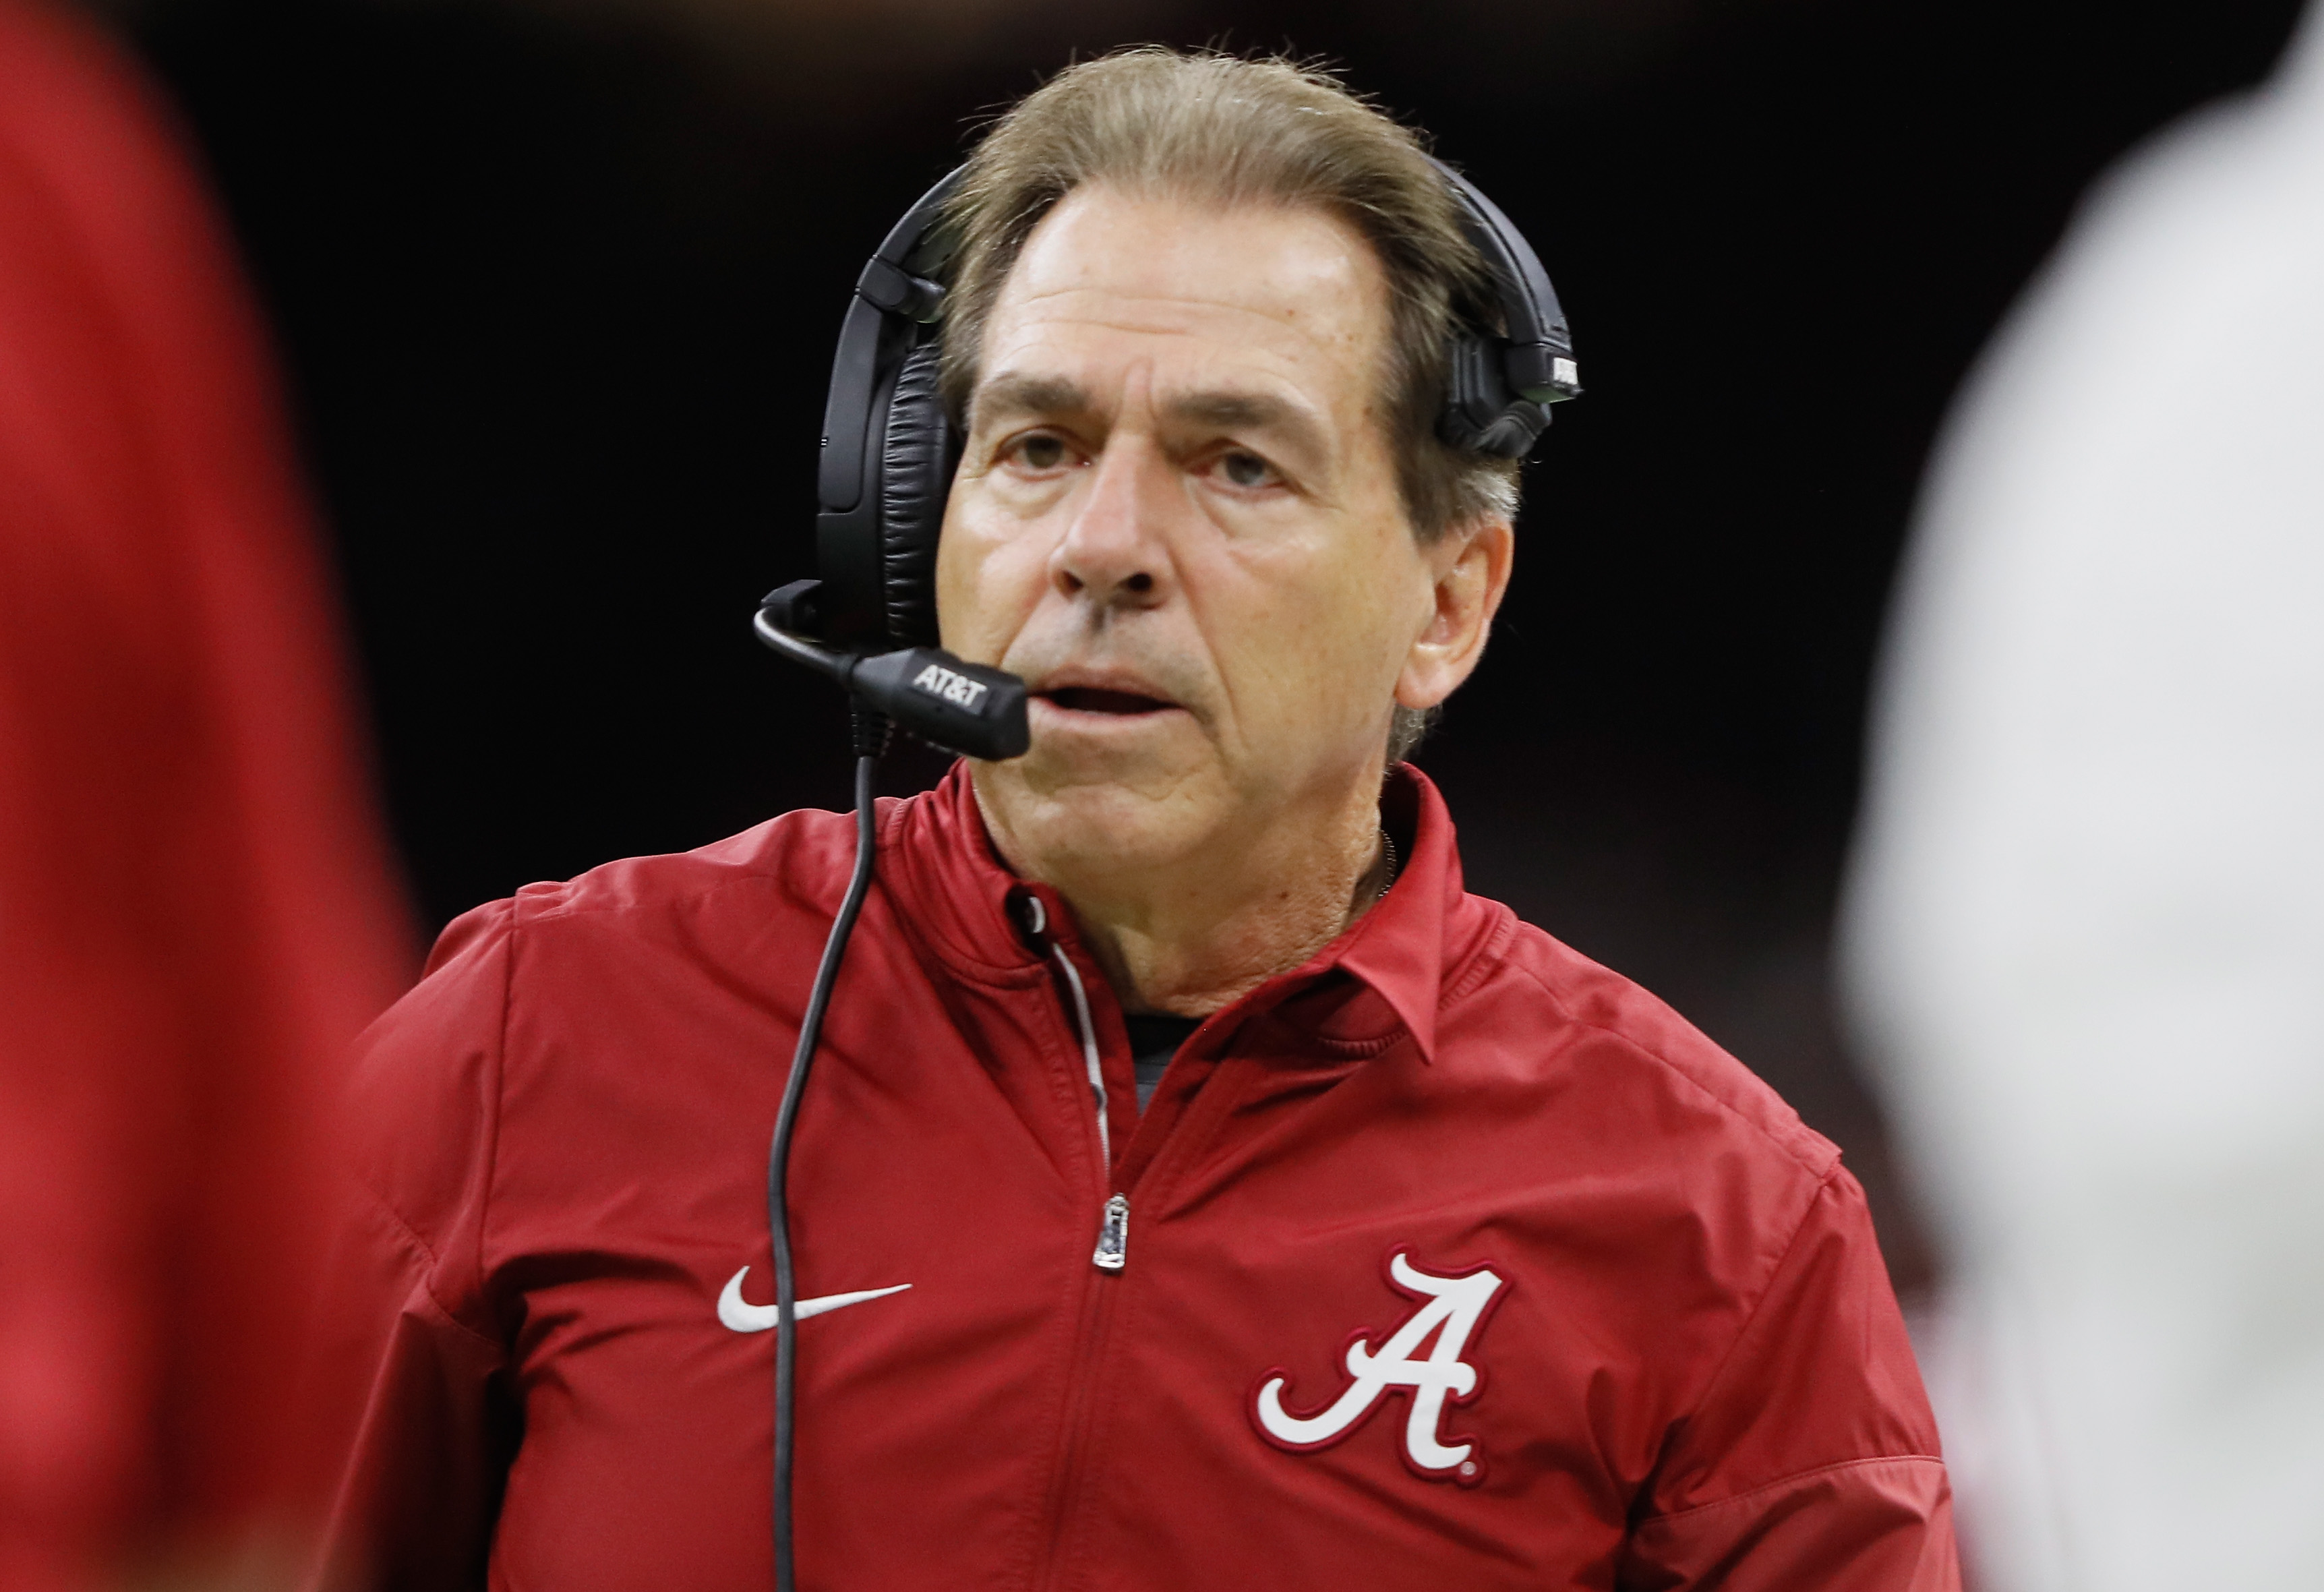 Nick Saban of the Alabama Crimson Tide reacts in the second half of the AllState Sugar Bowl against the Clemson Tigers at the Mercedes-Benz Superdome on January 1, 2018 in New Orleans, Louisiana.